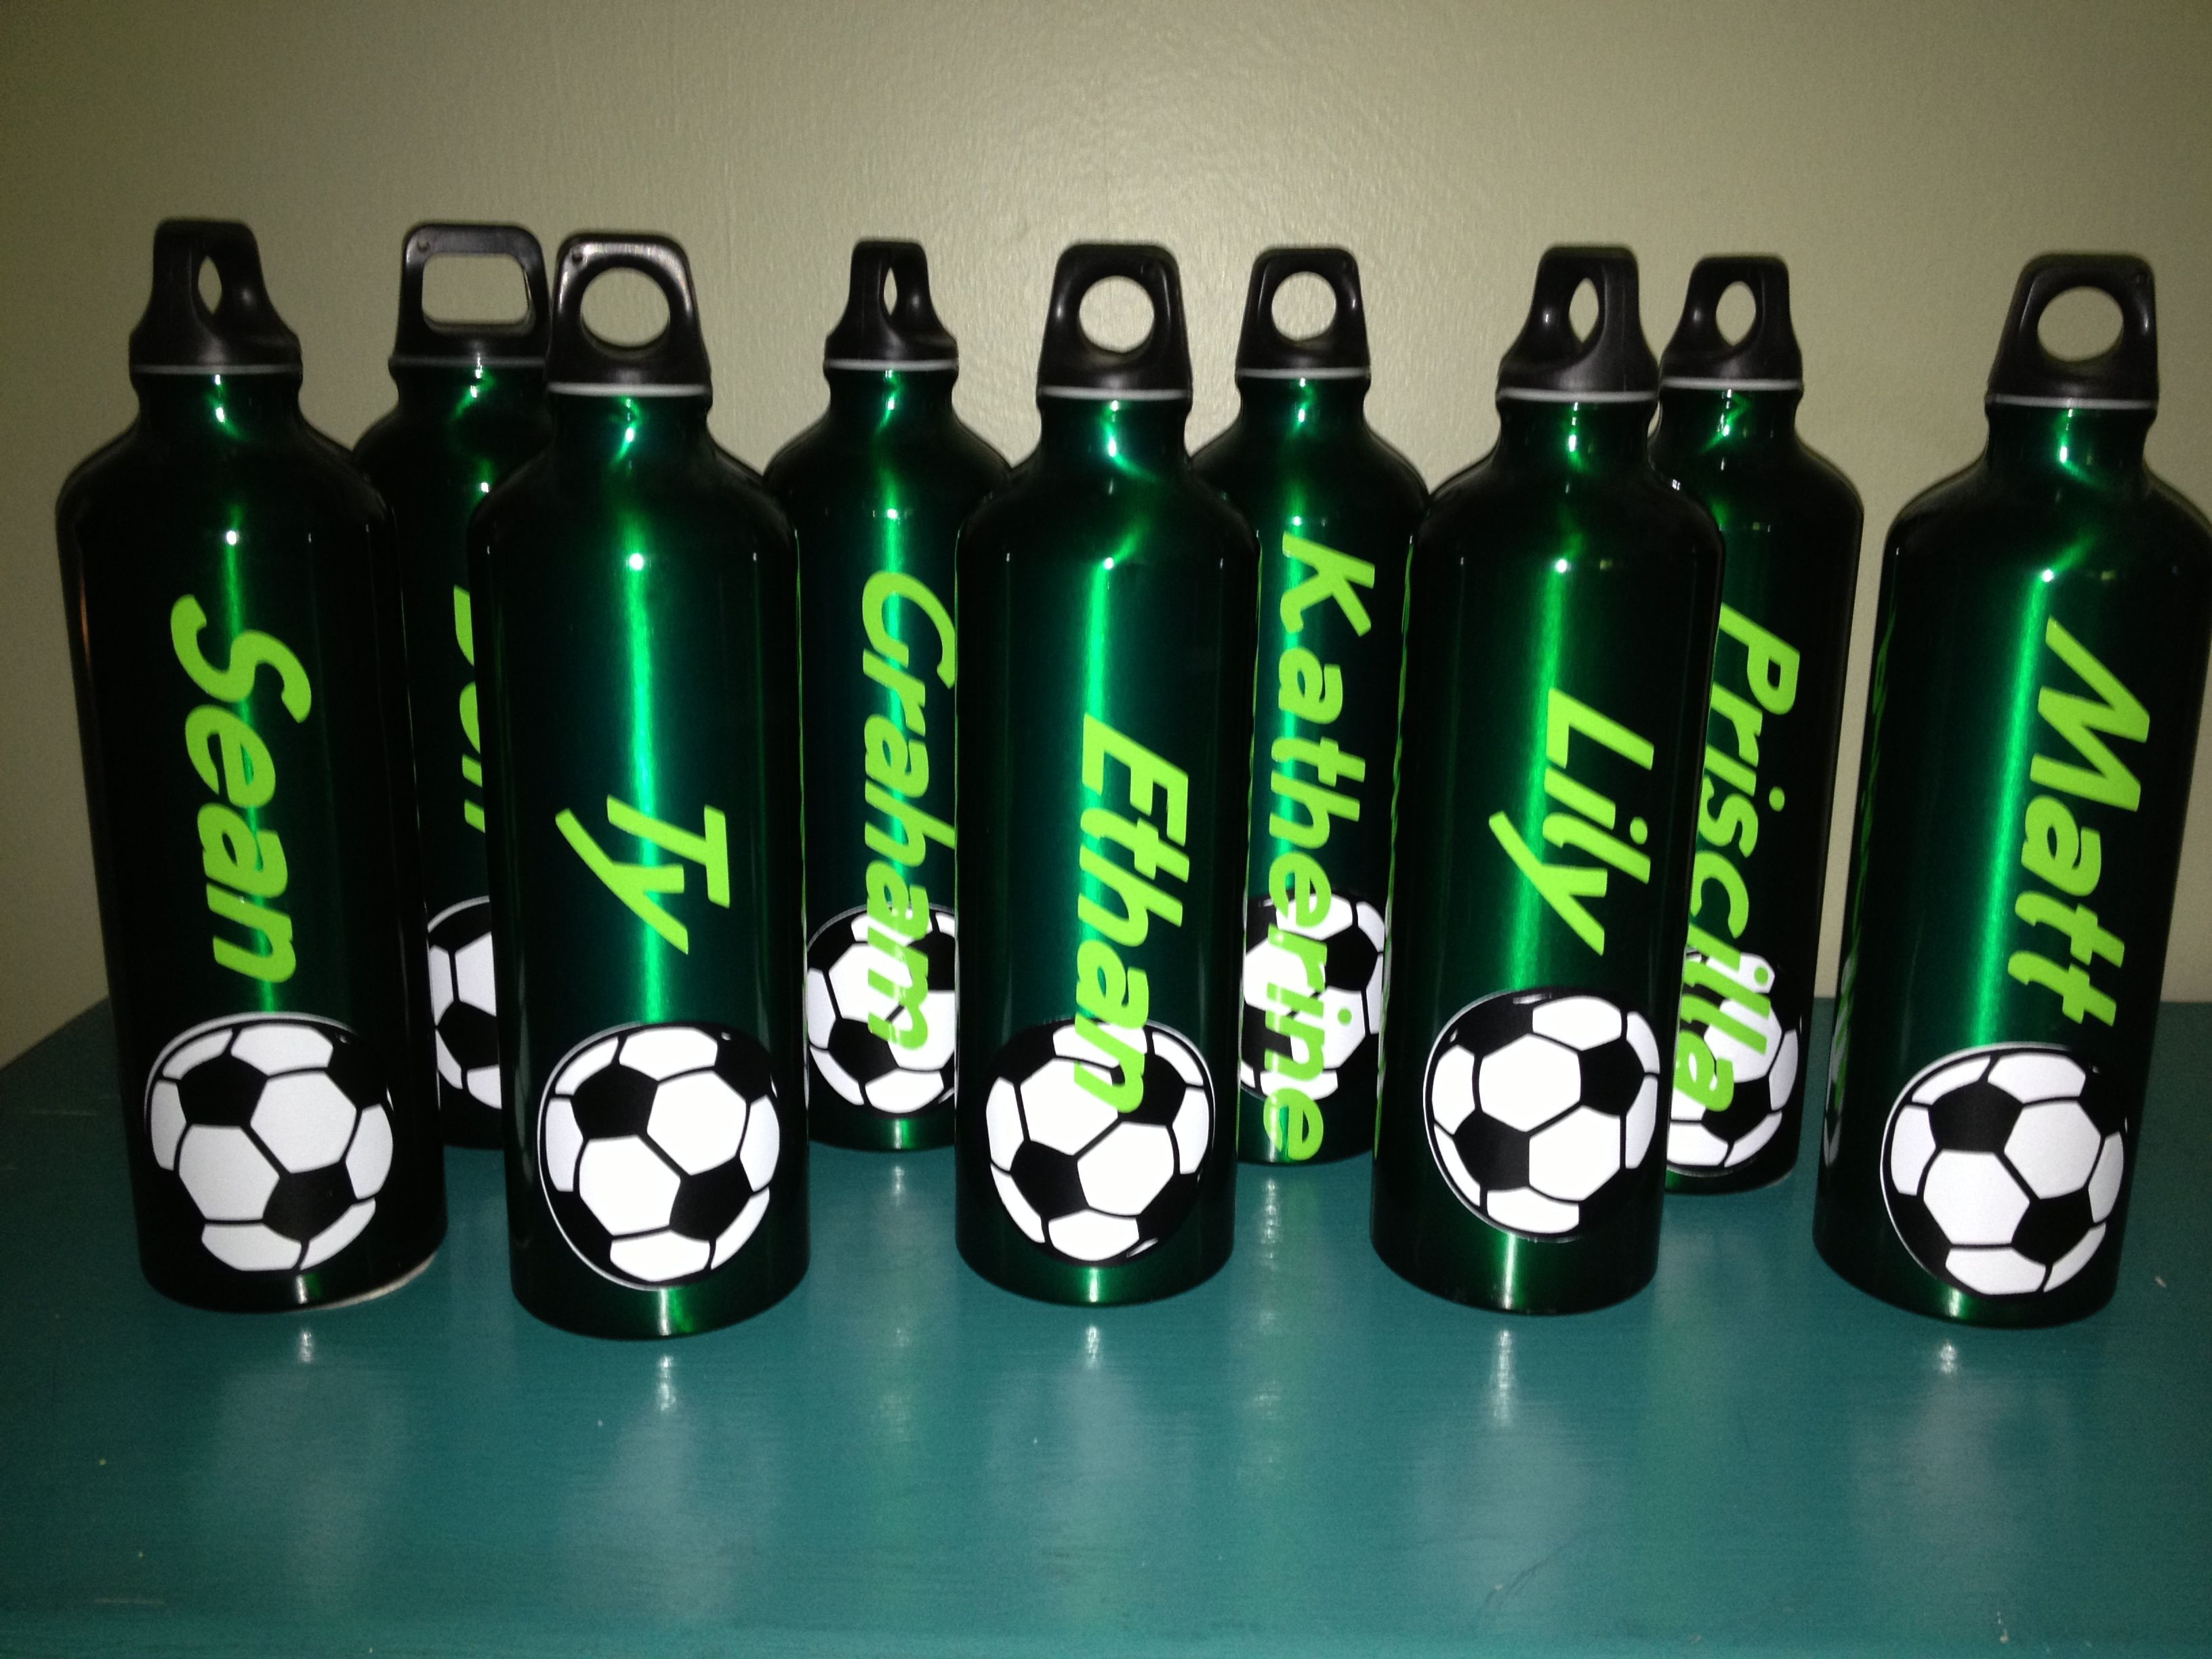 Best ideas about Soccer Gift Ideas . Save or Pin Soccer Team Gifts Party Themes and Ideas Now.